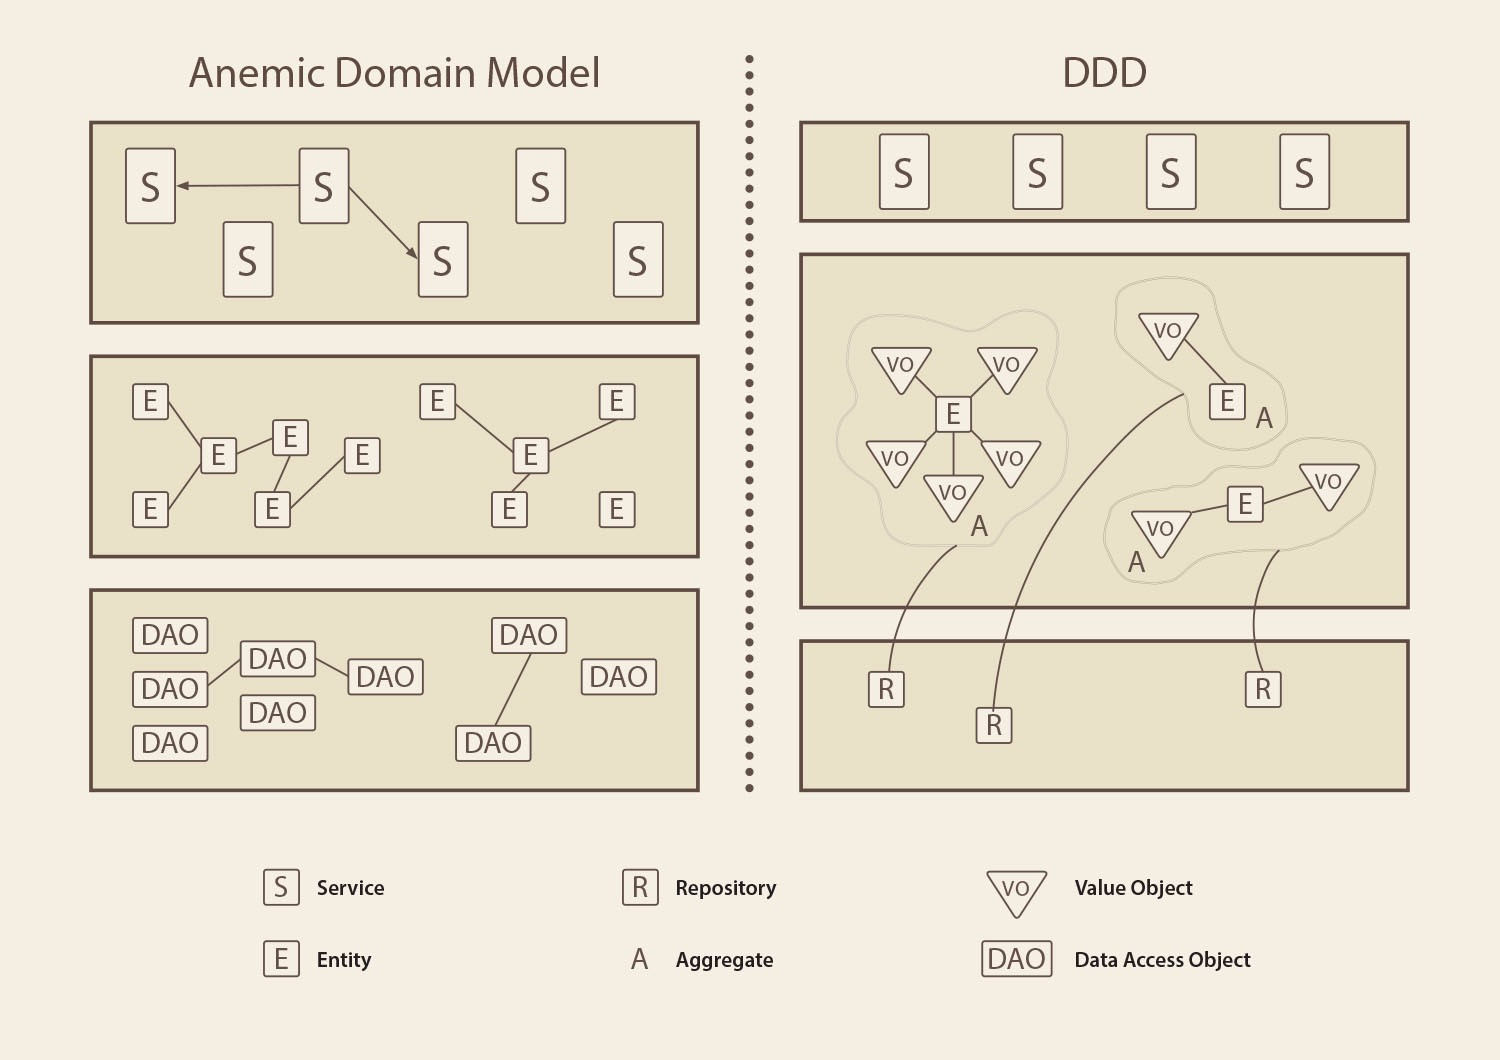 Domain Driven Design Vs Anemic Model How Do They Differ